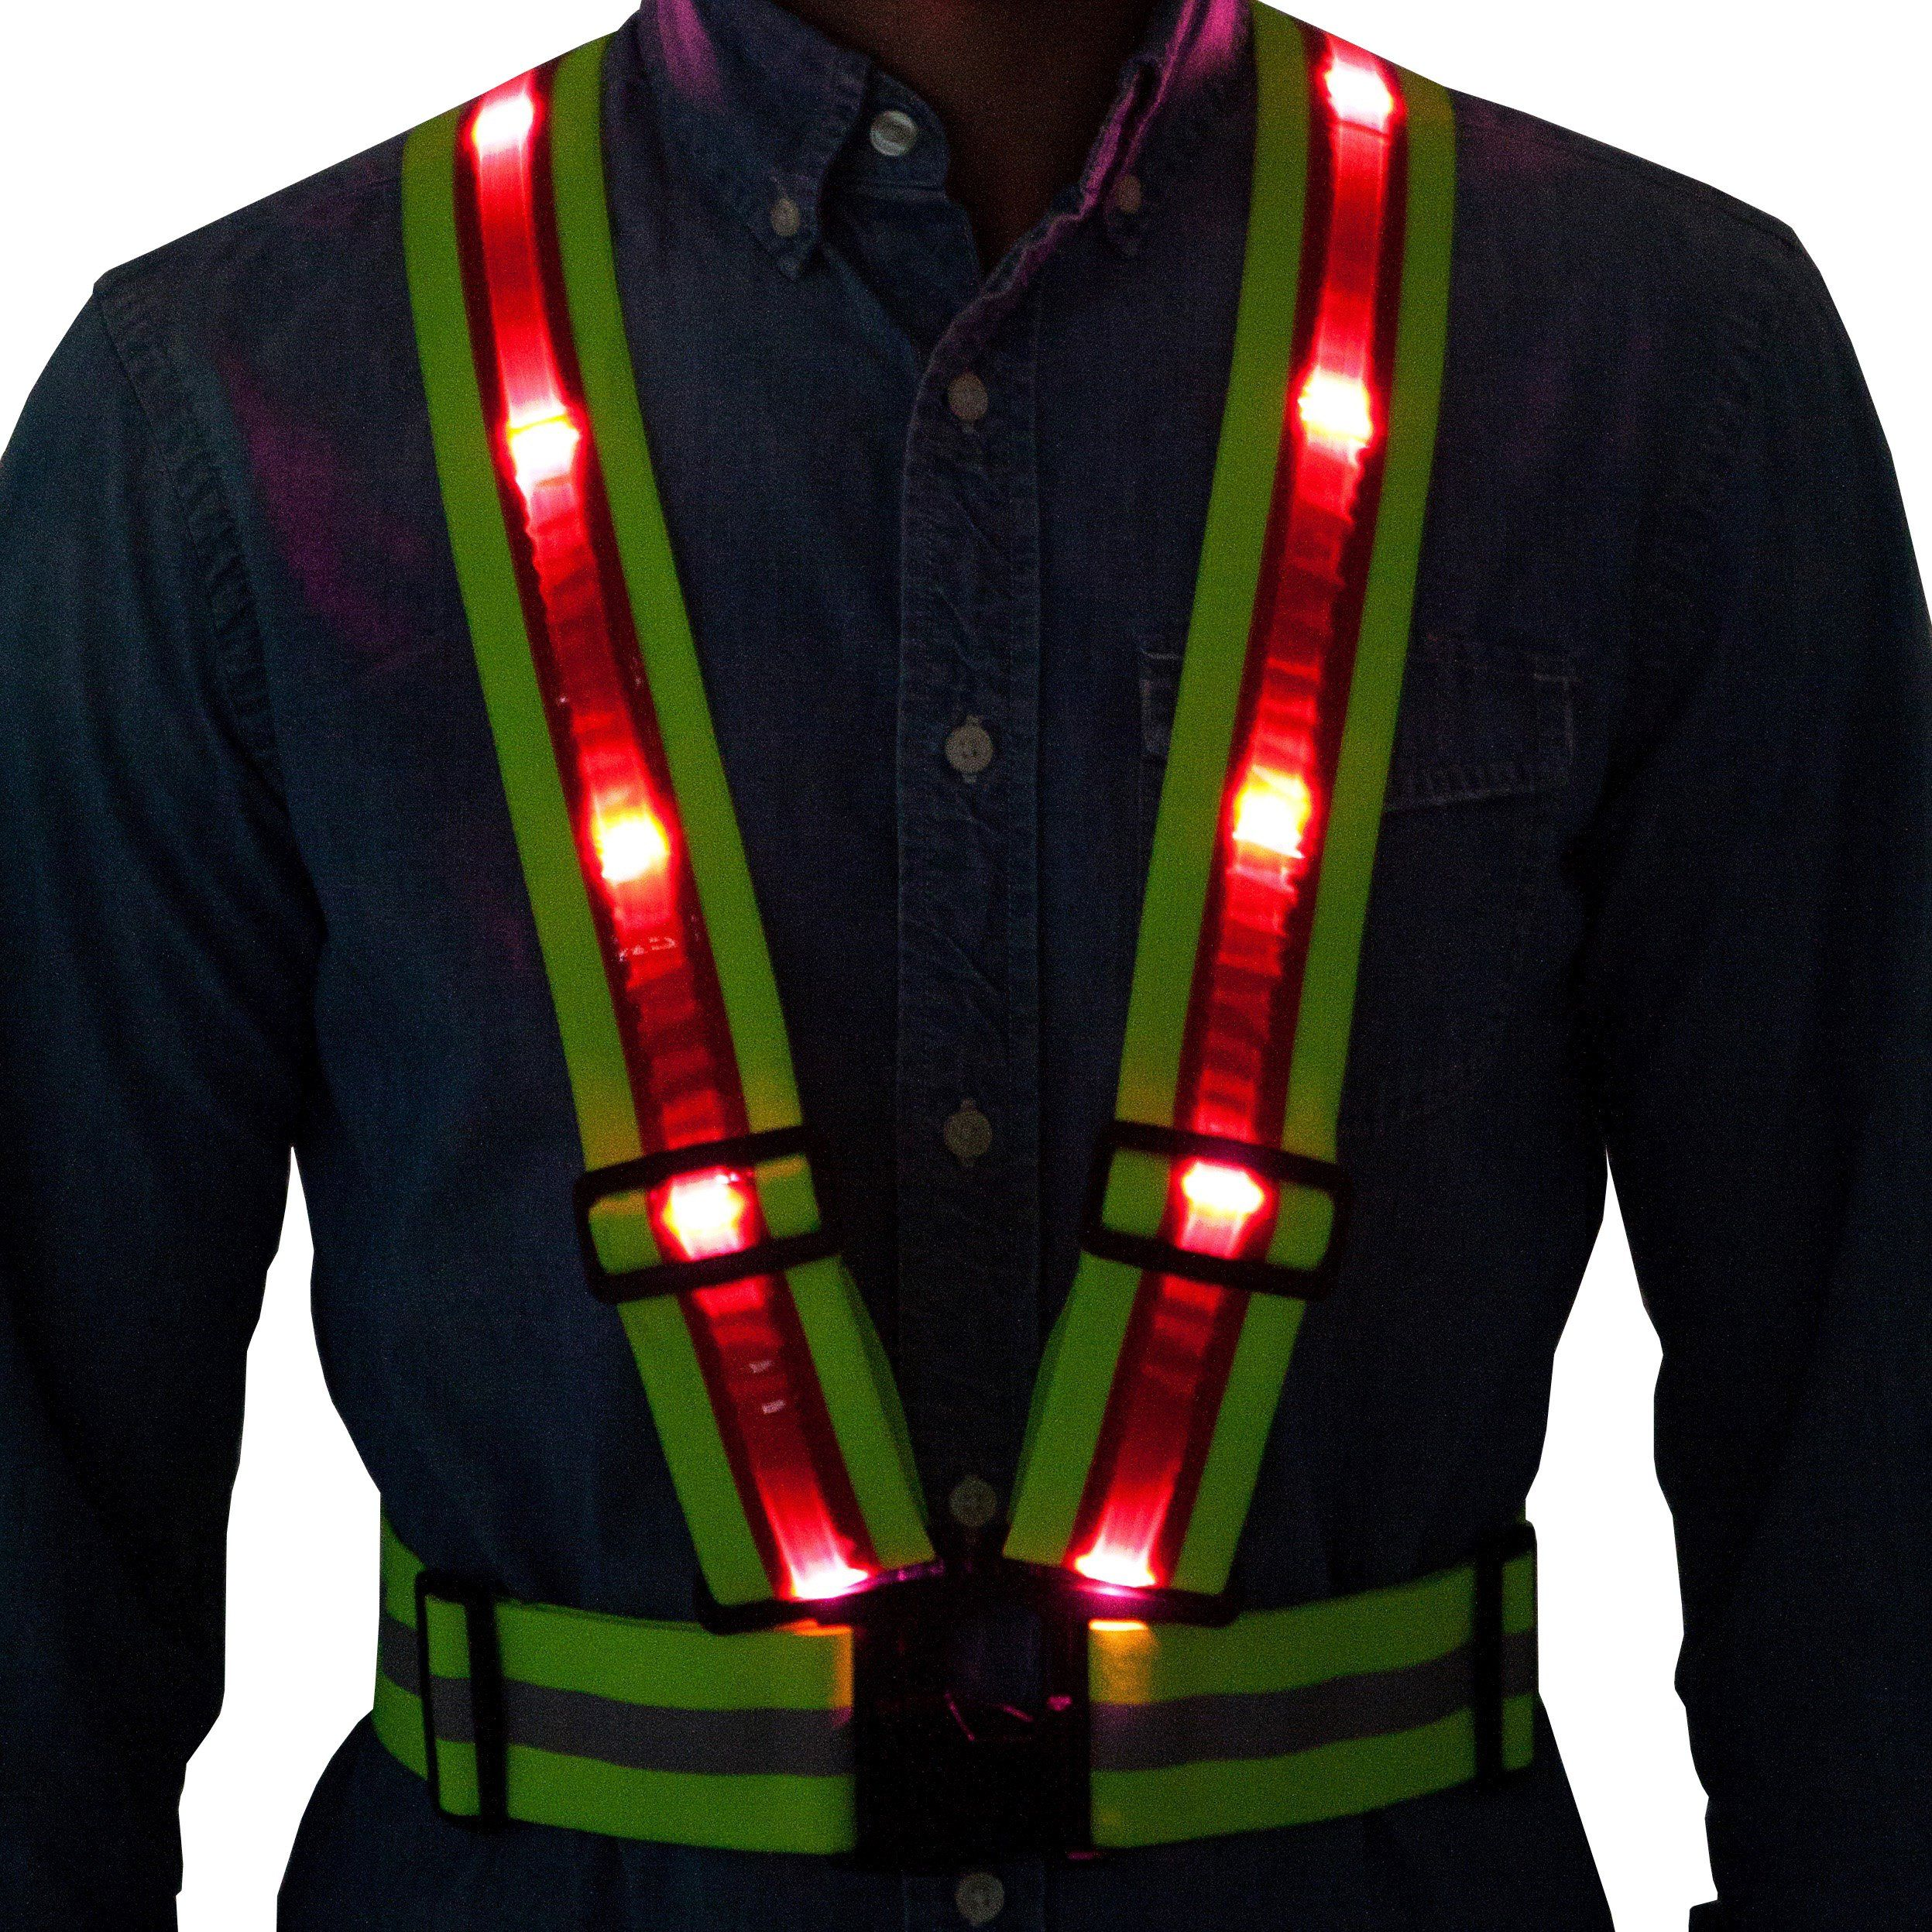 LED Reflective Safety Vest from Tuvizo with Storage Bag